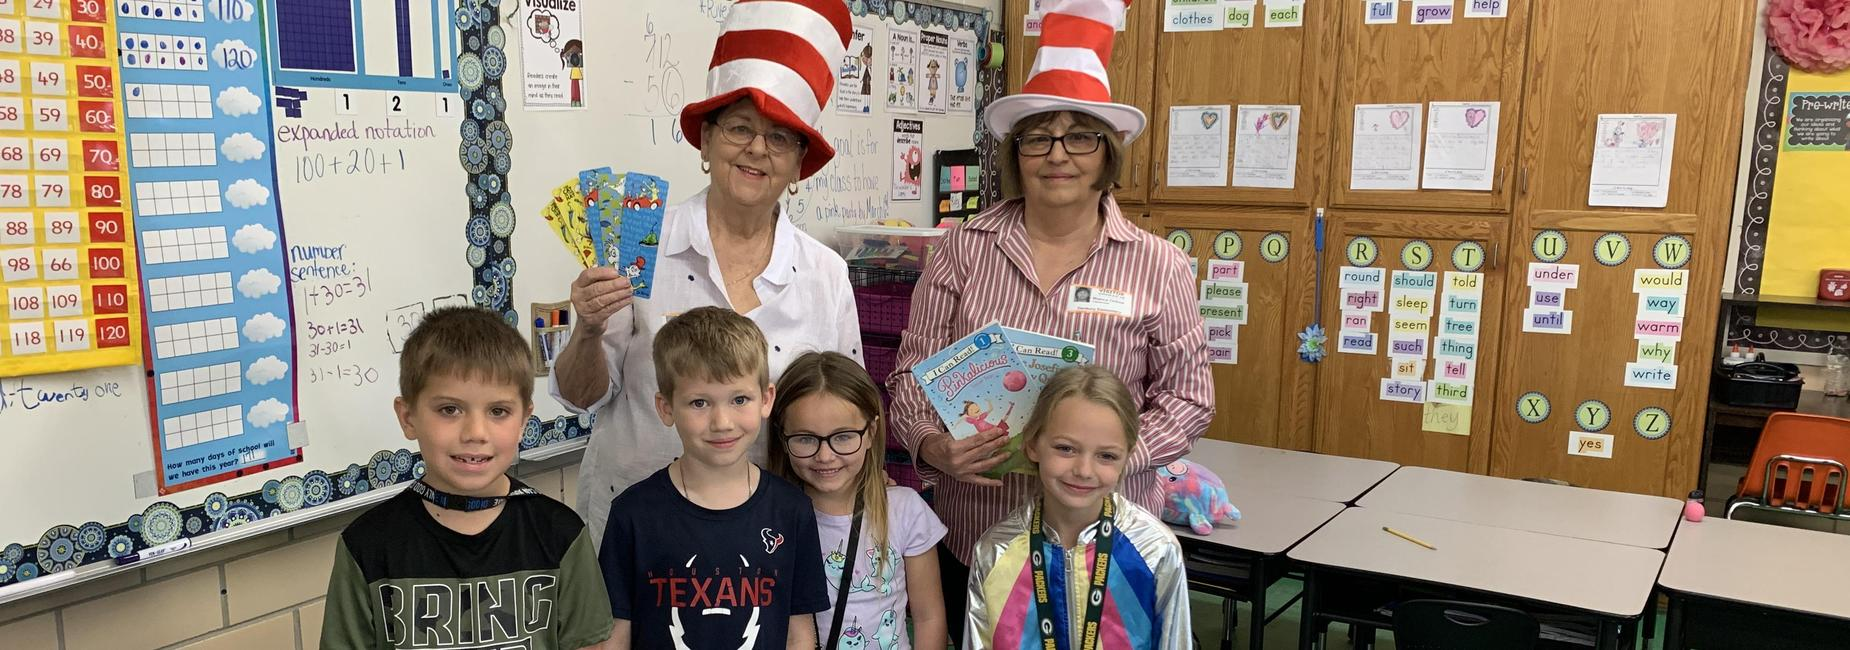 Dr. Seuss readers